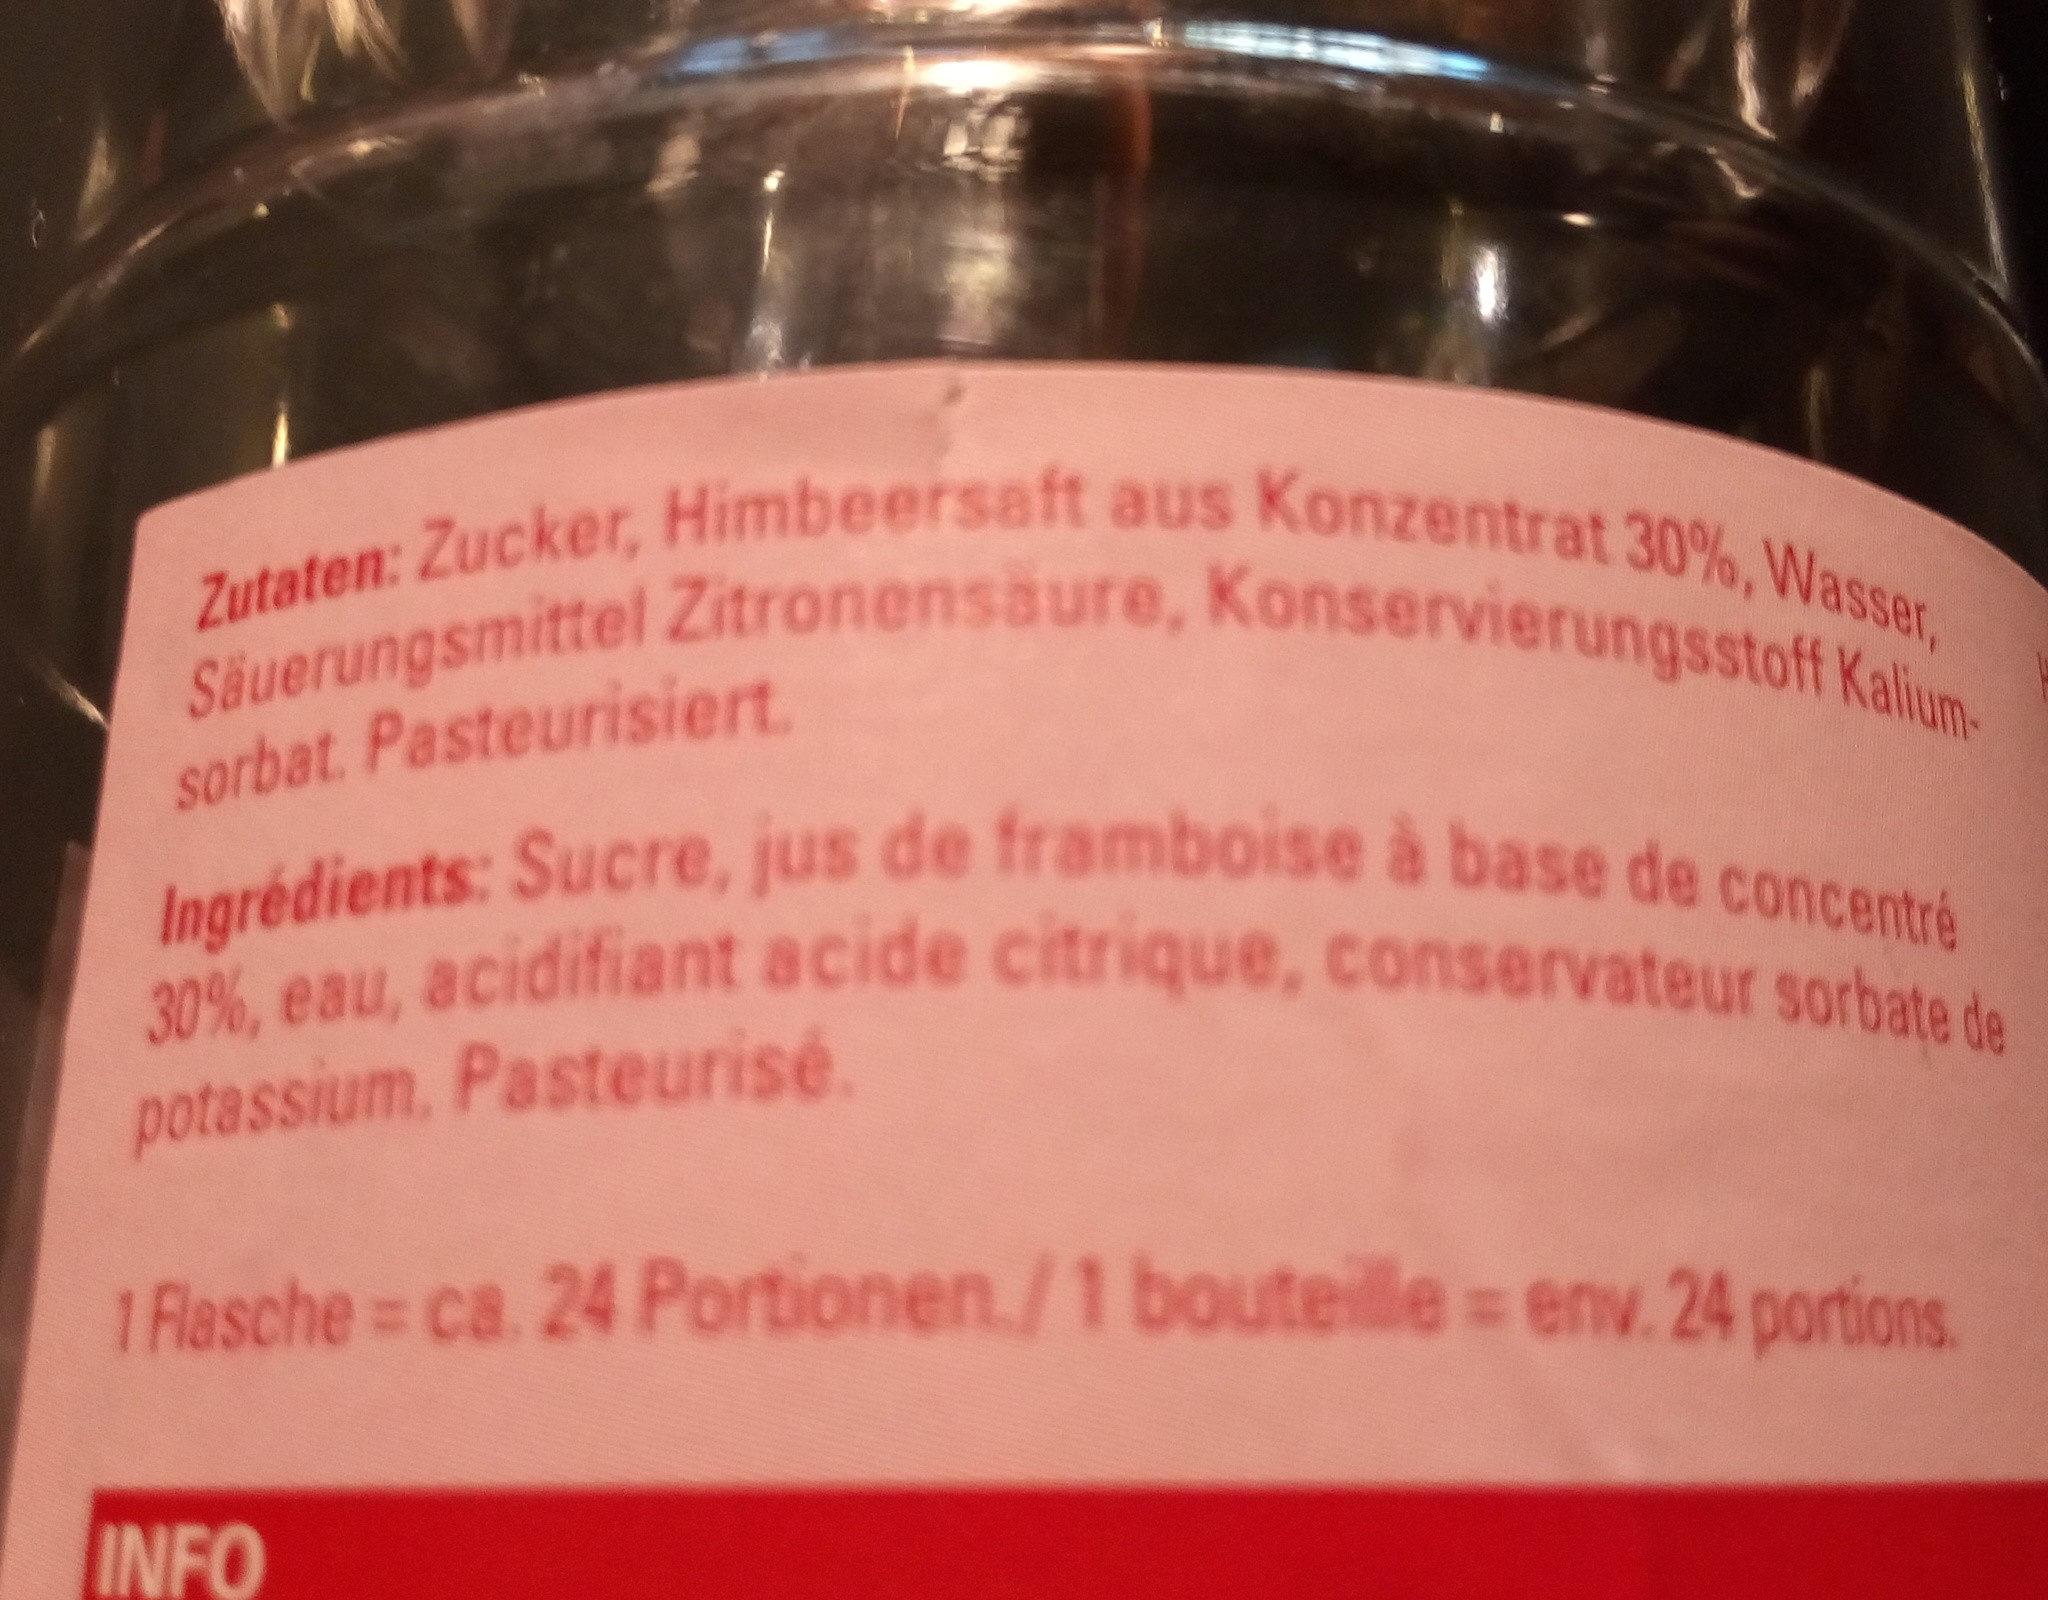 sirop de framboise - Ingredients